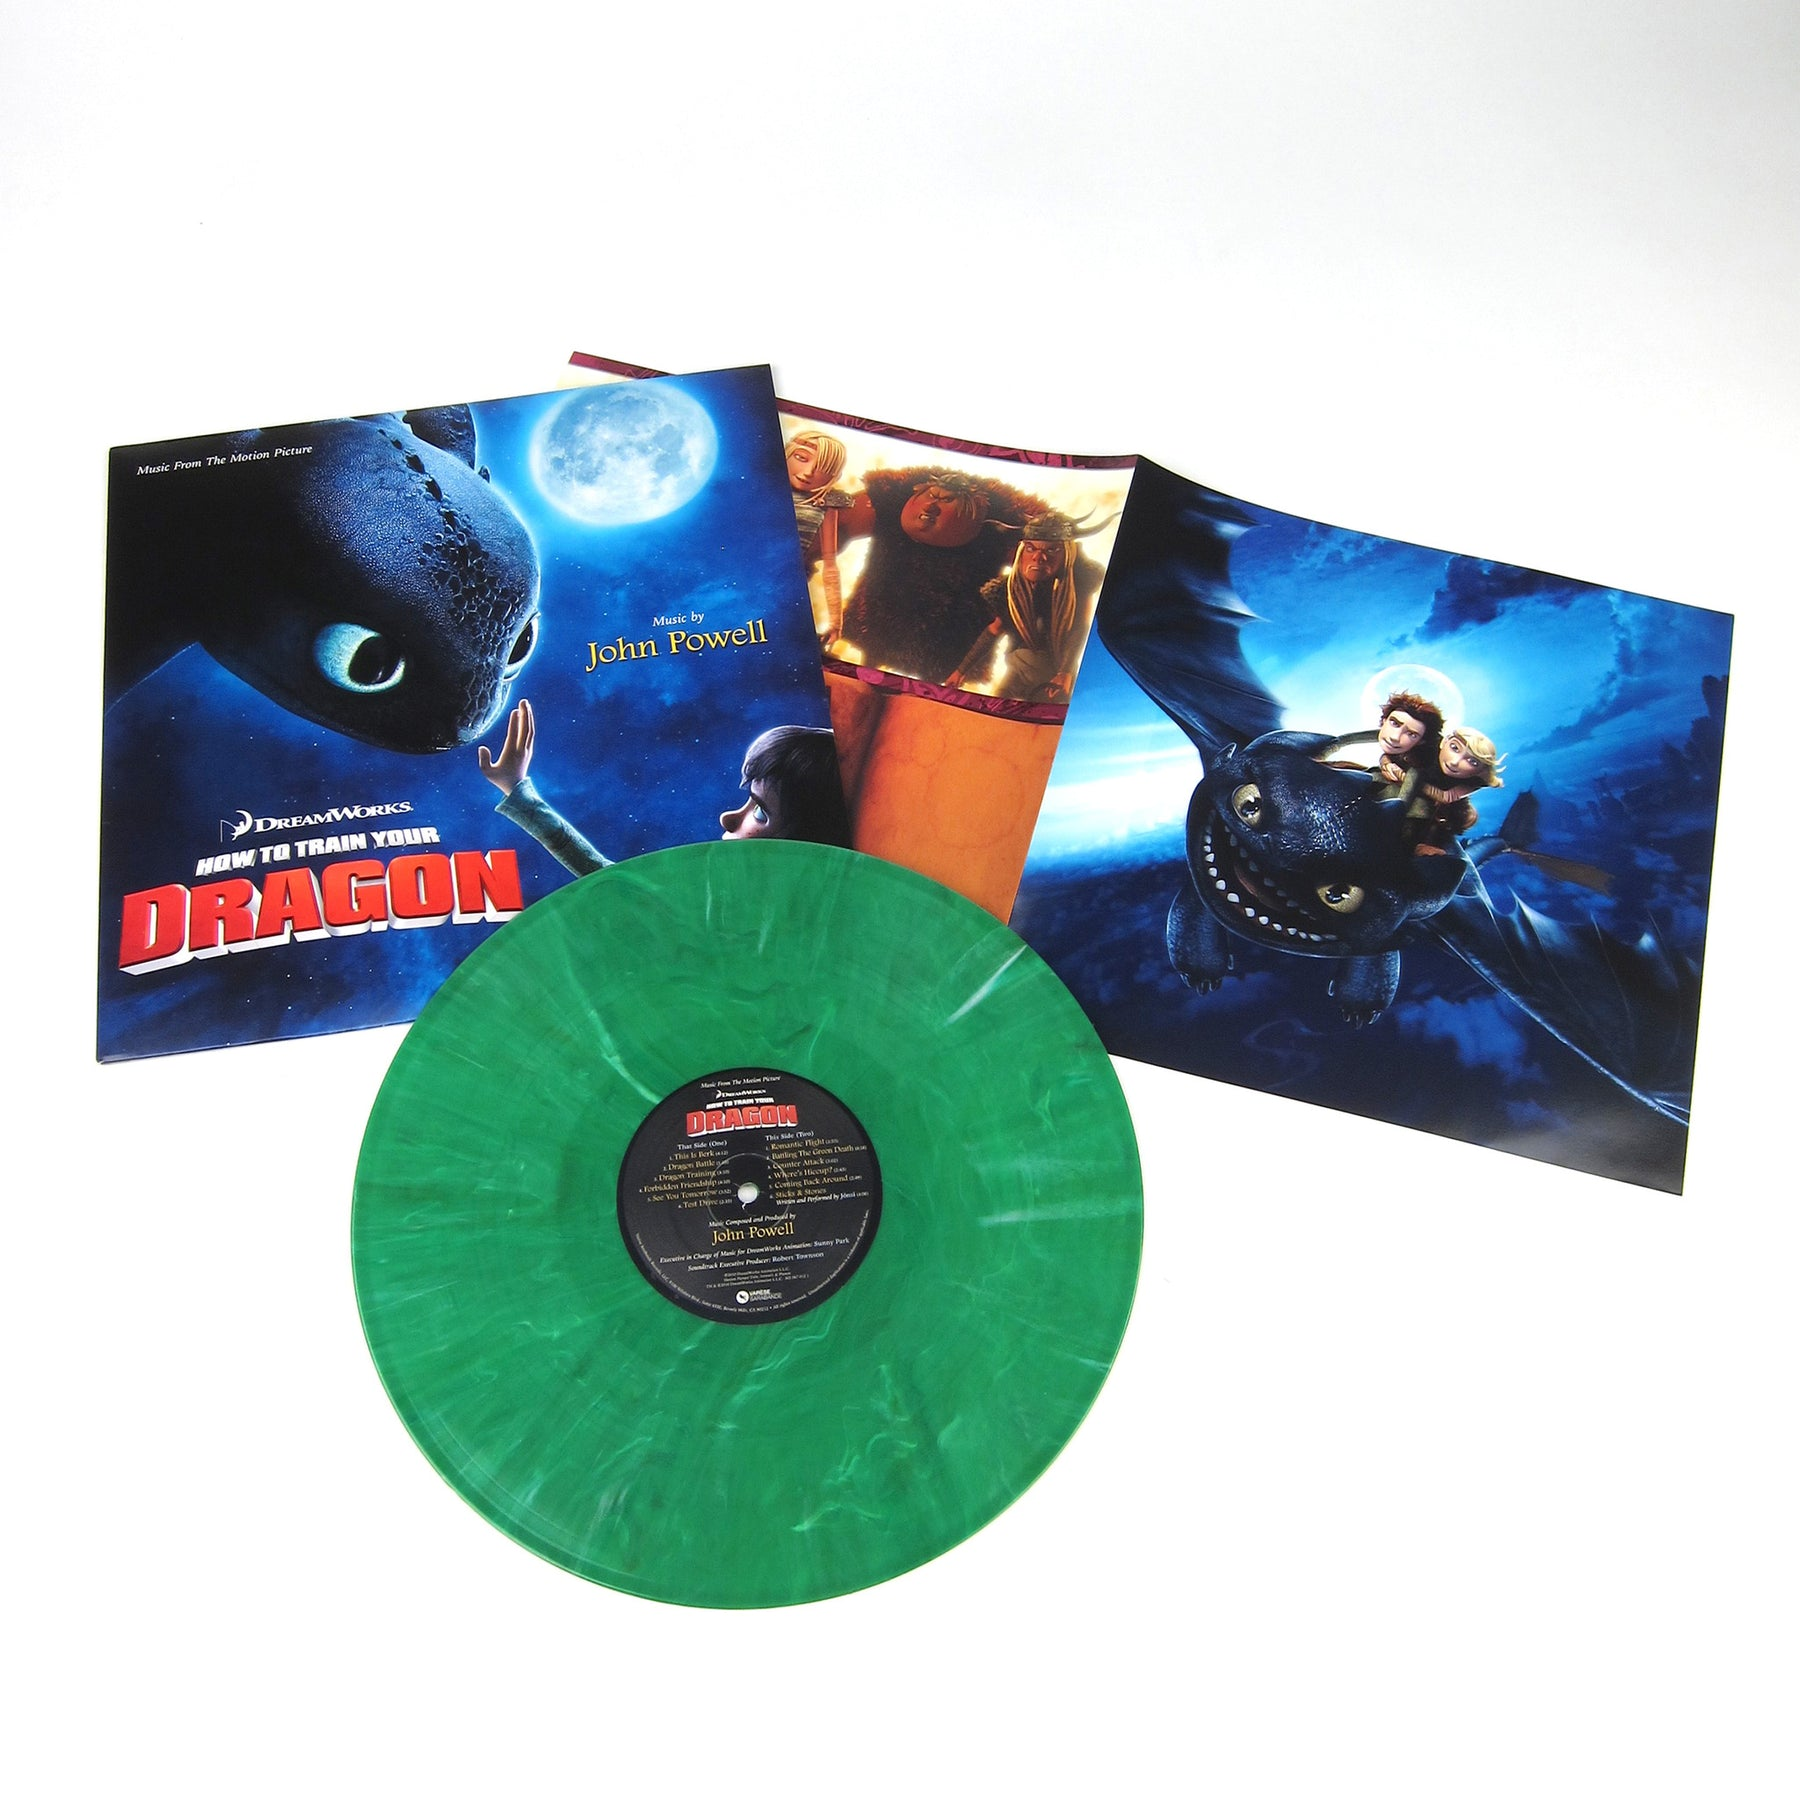 John powell how to train your dragon lp turntablelab john powell how to train your dragon 180g colored vinyl vinyl lp ccuart Image collections